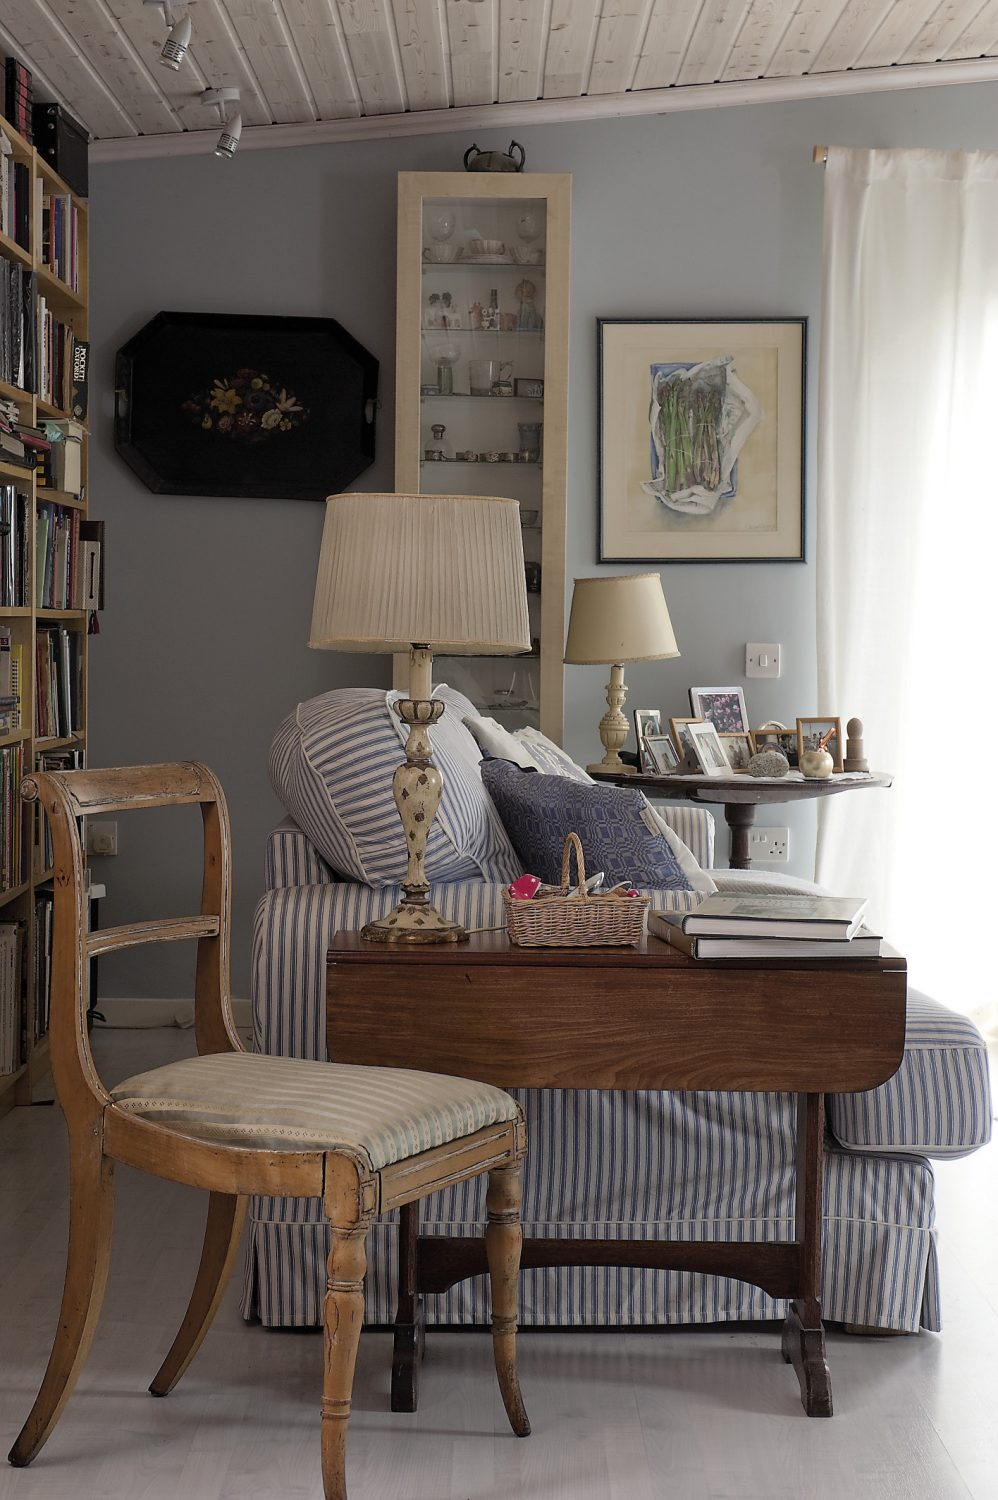 The sitting room is filled with large comfy sofas covered in blue and white ticking